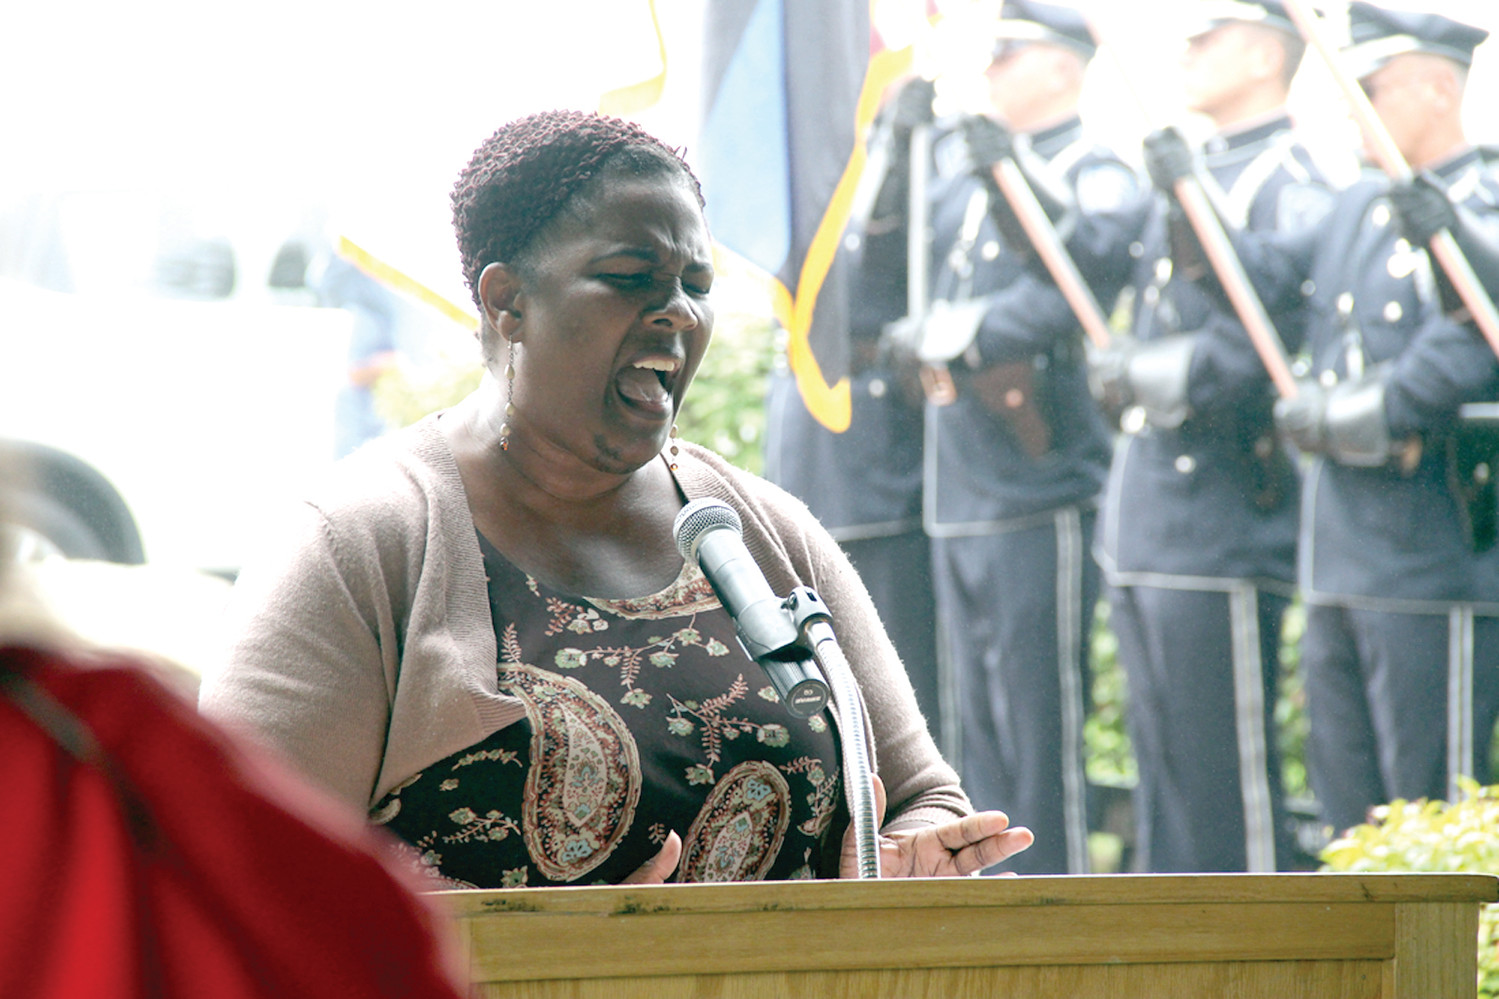 POWERFUL RENDITION: Cheryl Albright performed the National Anthem to open the ceremony and later God Bless America.